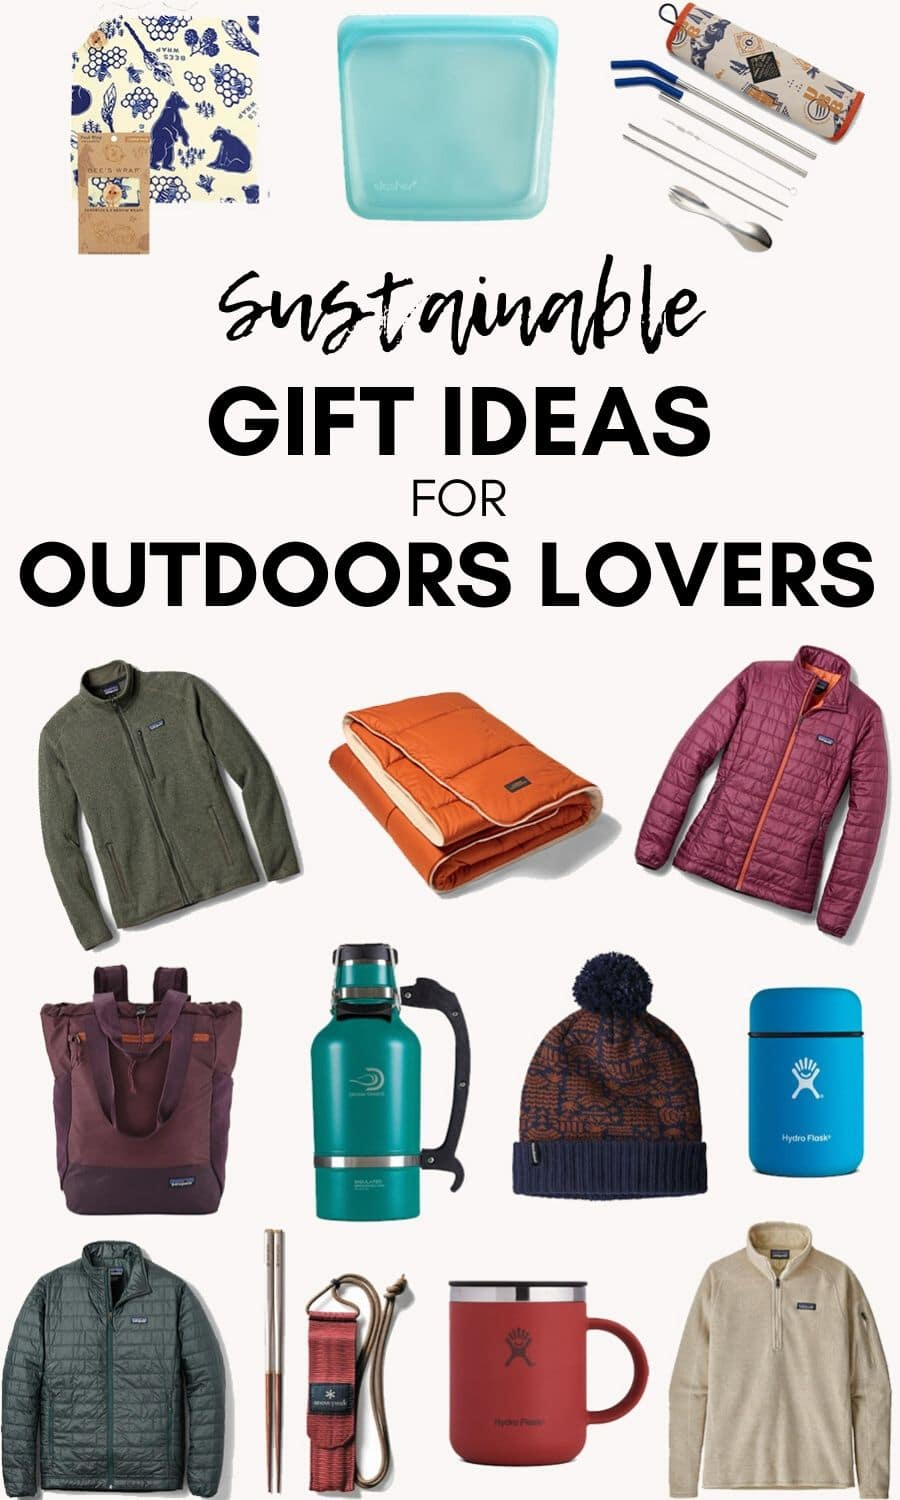 Combining gift-giving with sustainability, this holiday gift guide features gifts for the outdoors lover that also help to reduce our impact. From products that reduce waste to products made from recycled materials, there are lots of environmentally responsible ways to celebrate the holidays! via @freshoffthegrid